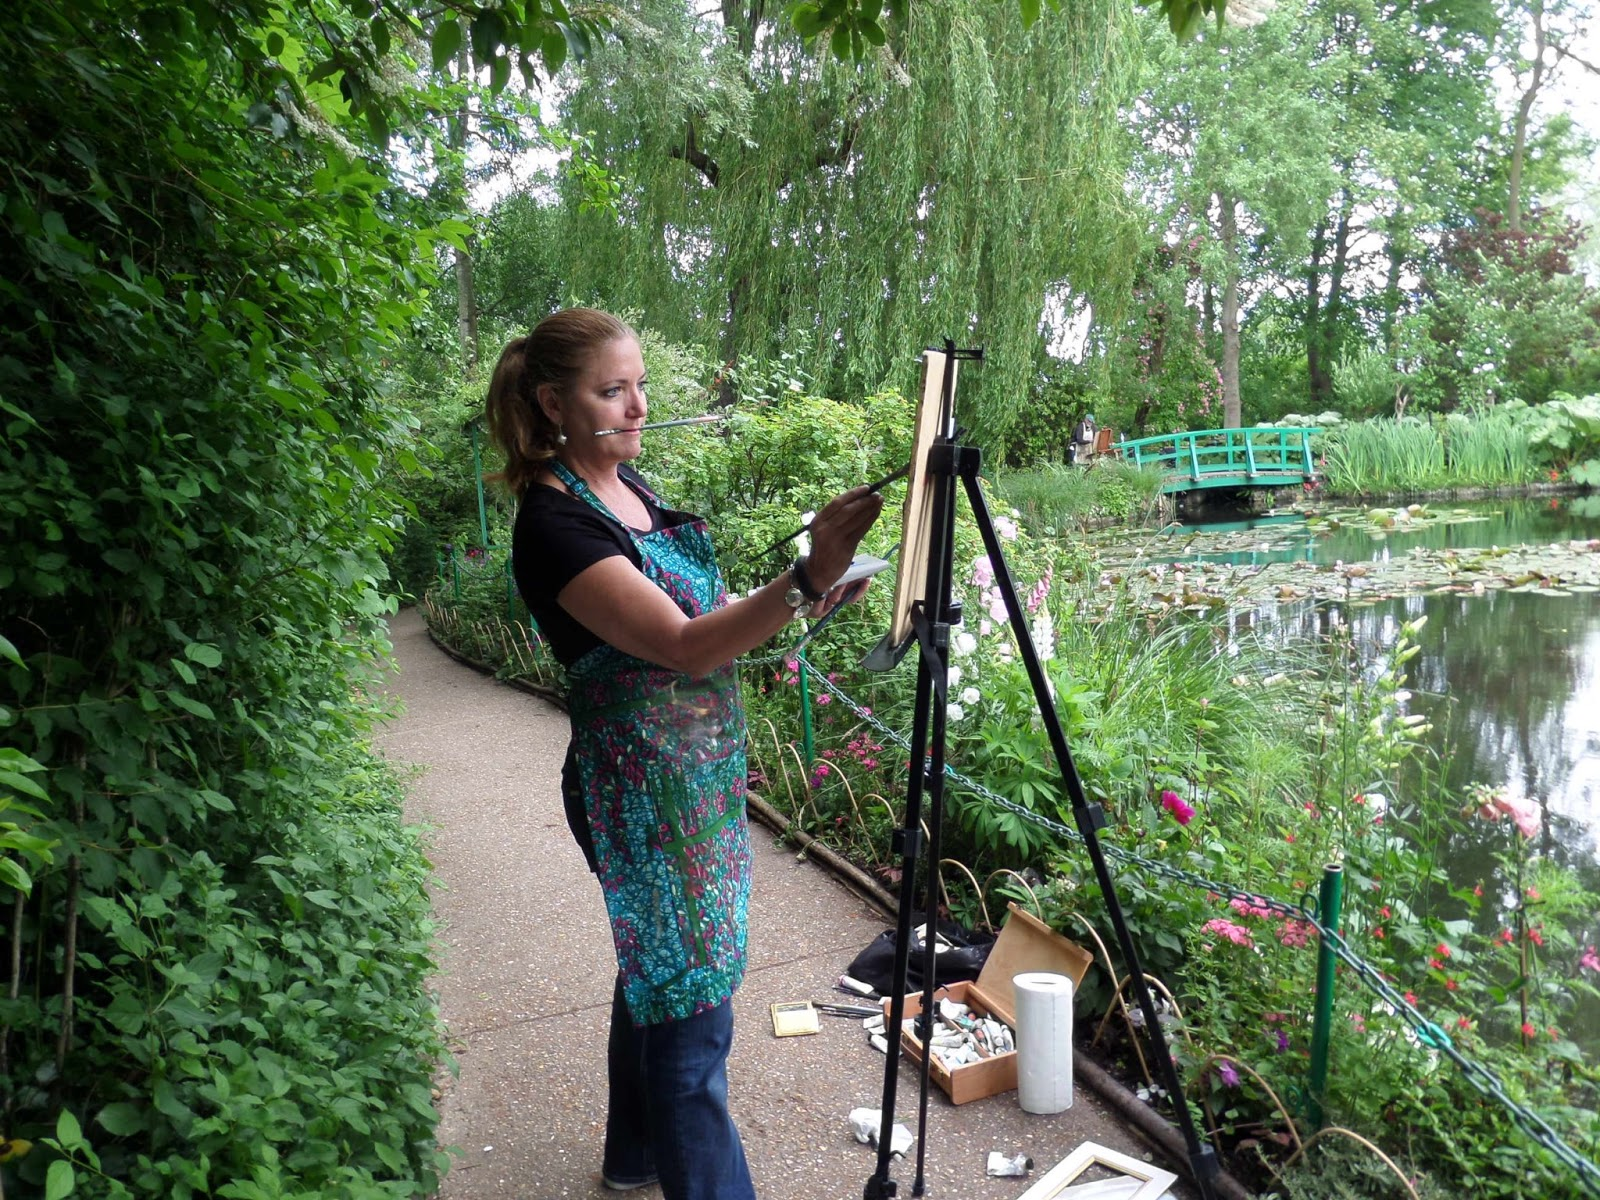 Teaching a workshop on the techniques and life of Monet while traveling from Paris to Normandy.